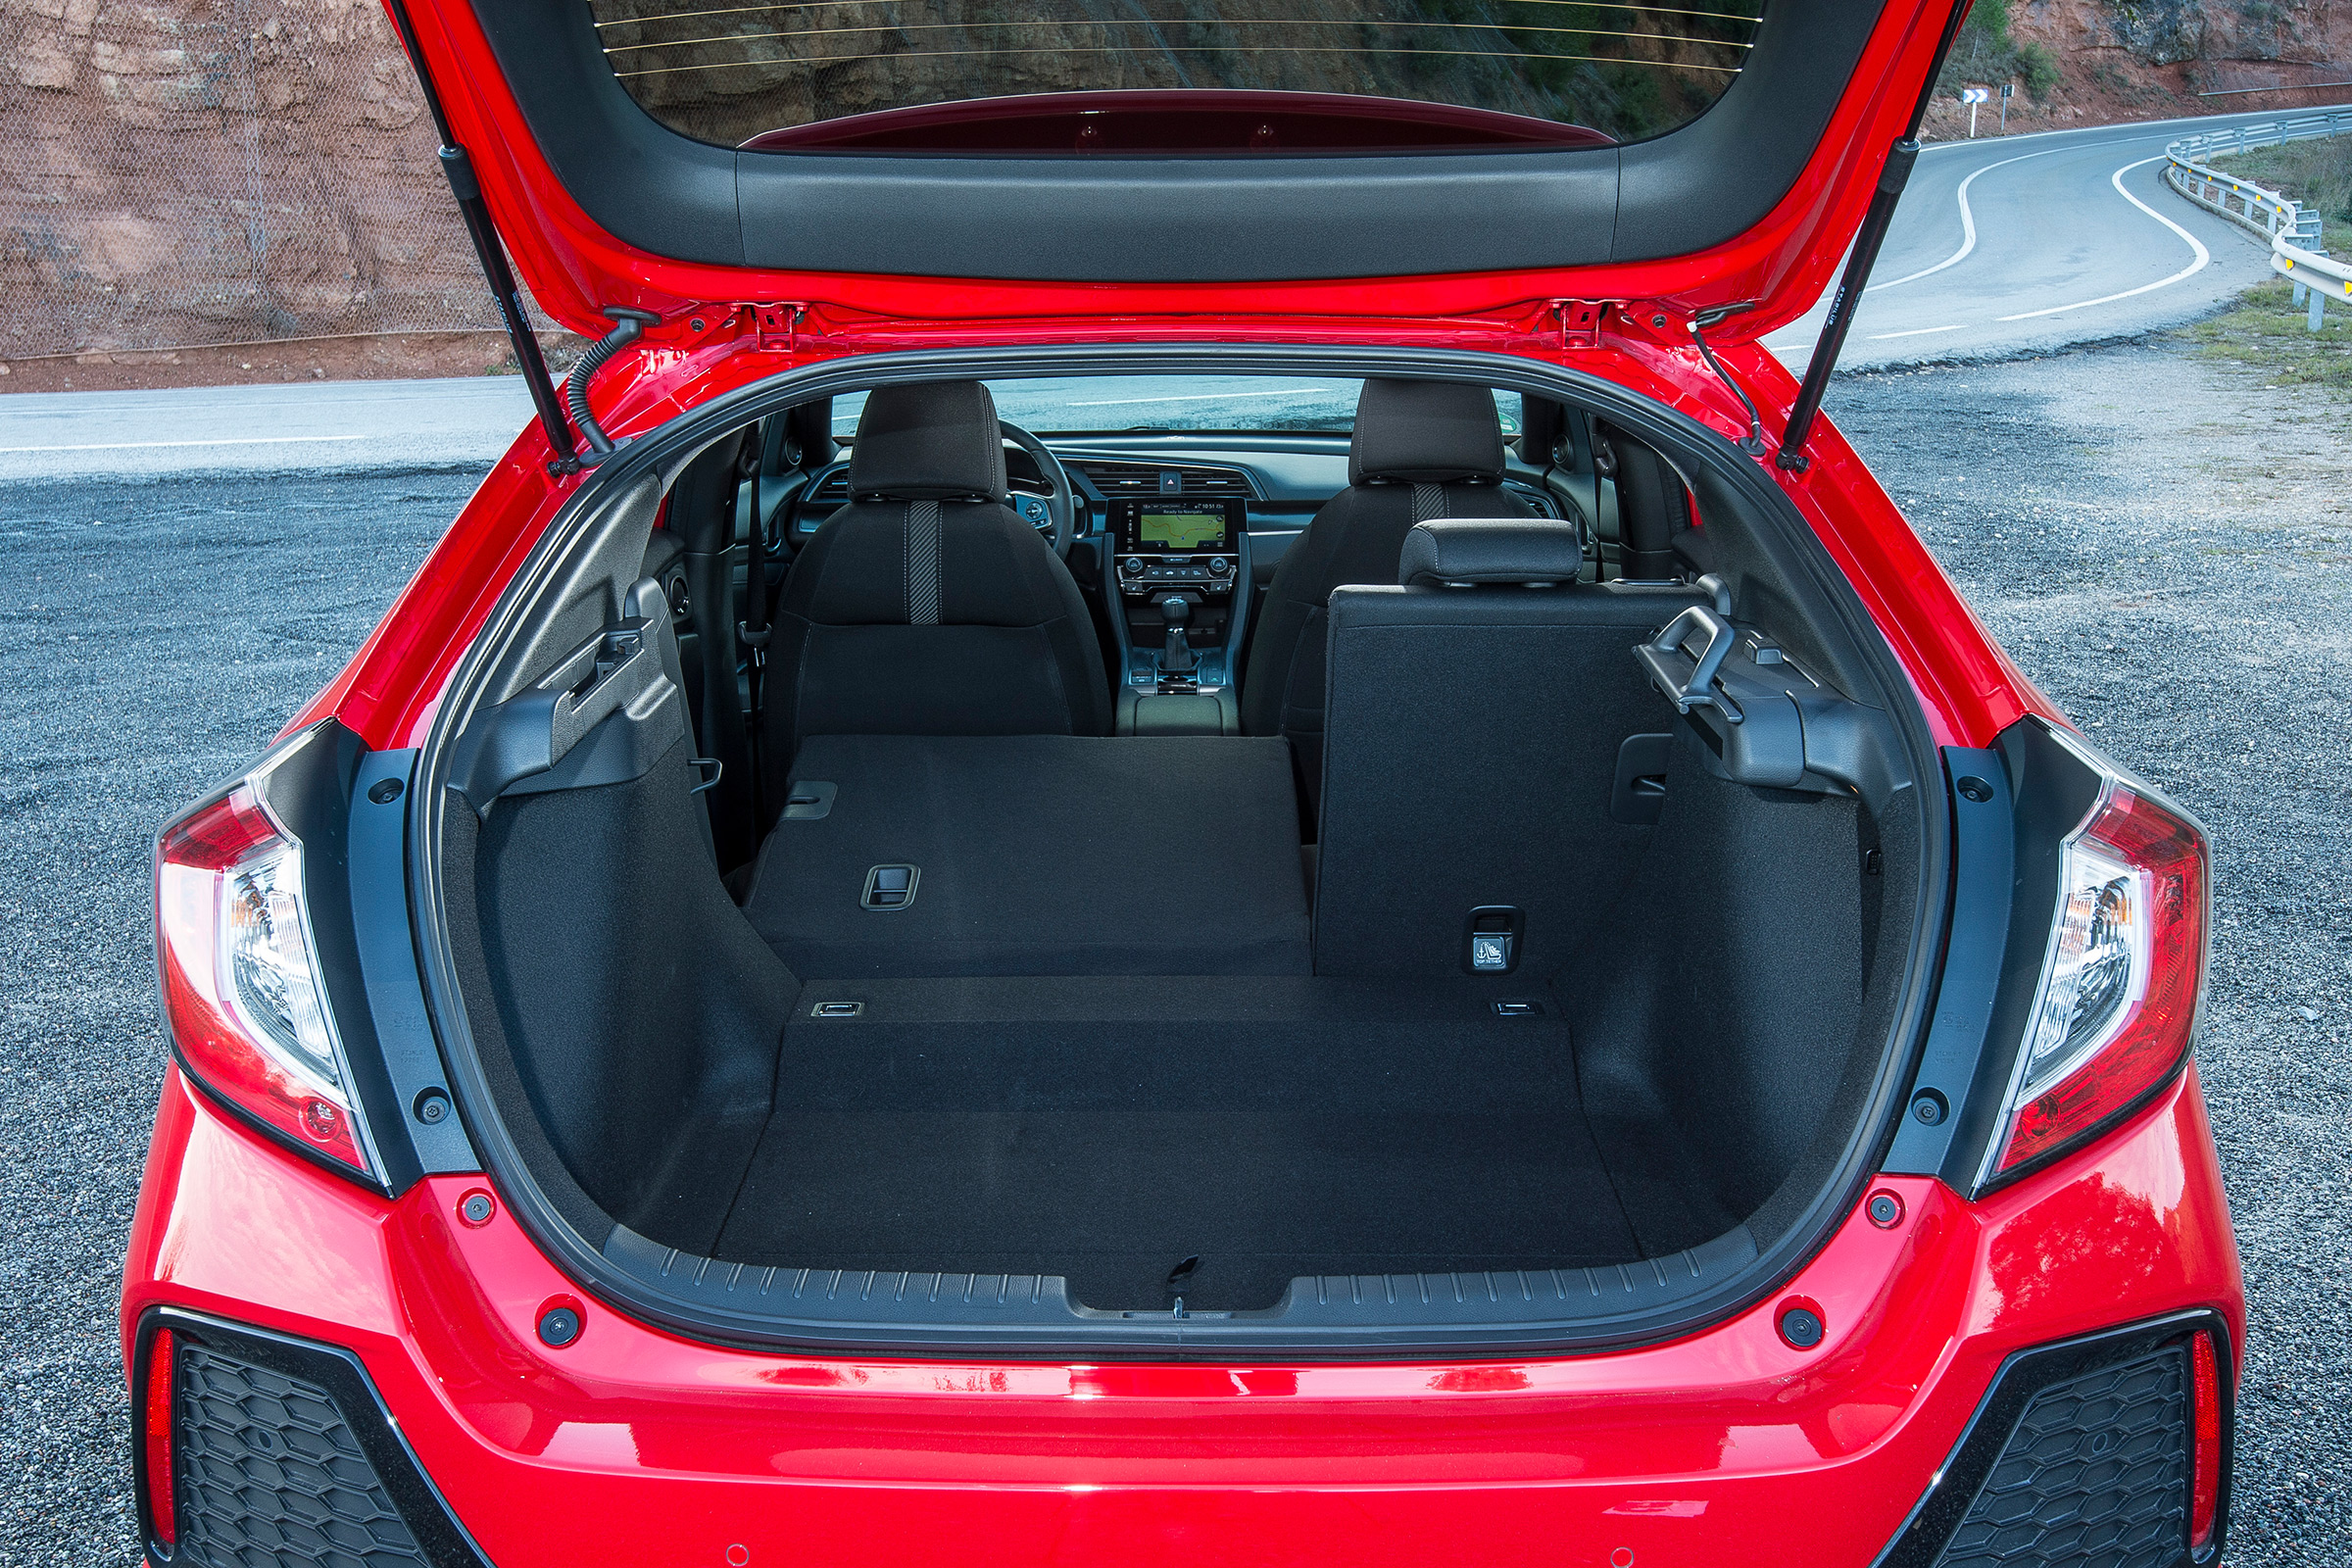 2017 Honda Civic Hatchback Red Interior View Cargo Trunk (View 23 of 34)